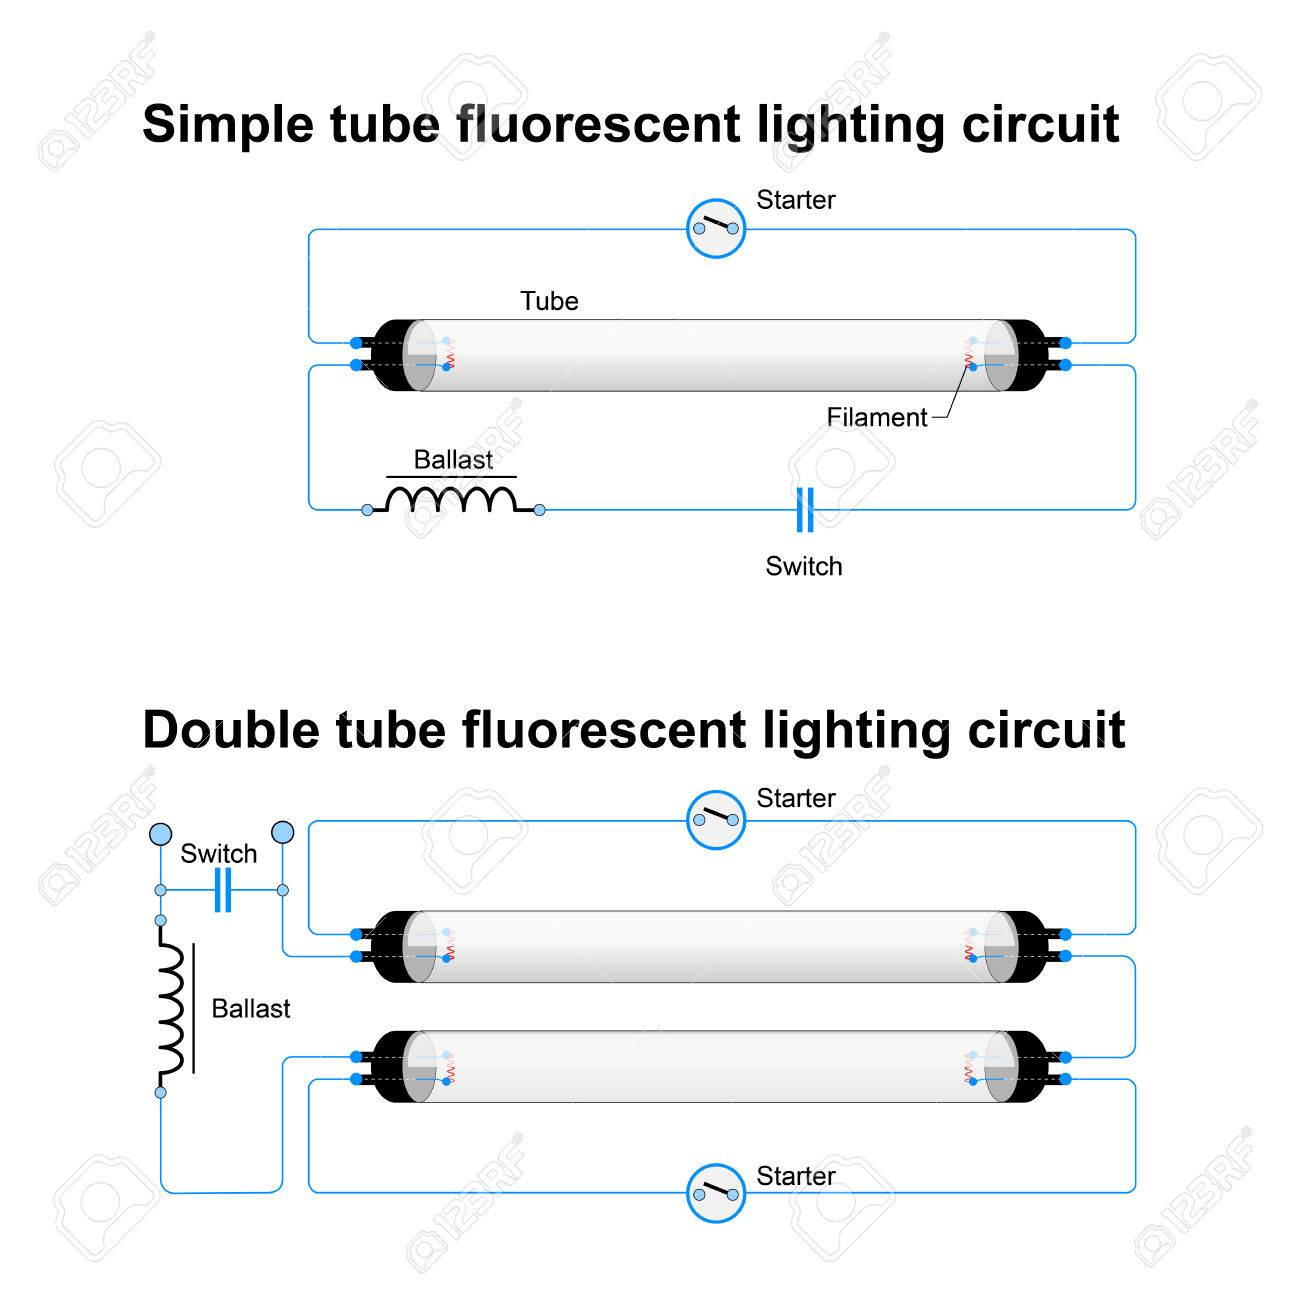 In Parallel Wiring Cfl Lights Free Download Diagrams Pictures Incandescent Light Bulb Diagram Fluorescent Bulbs House Symbols U2022 Rh Maxturner Co